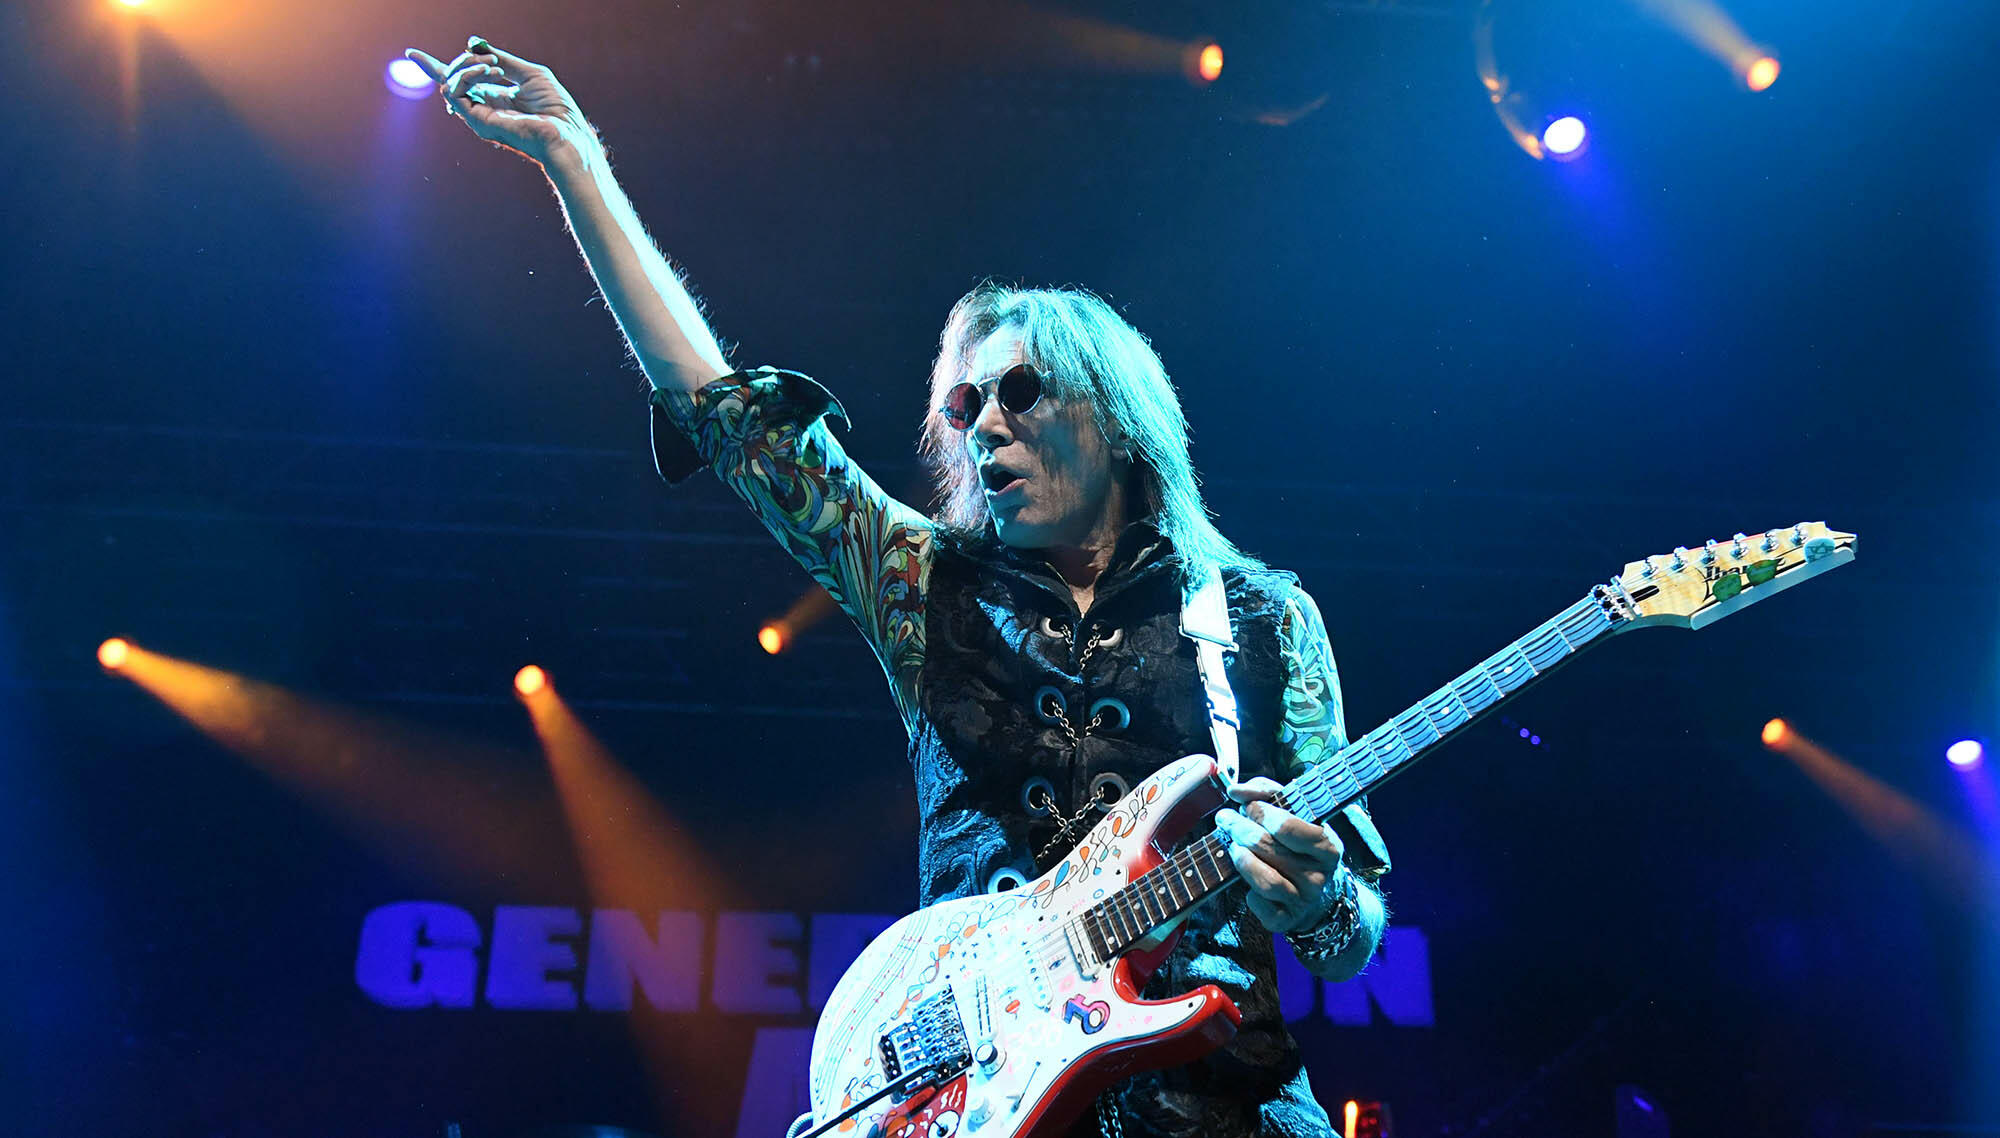 Steve Vai Says He Inadvertently Helped Create Grunge